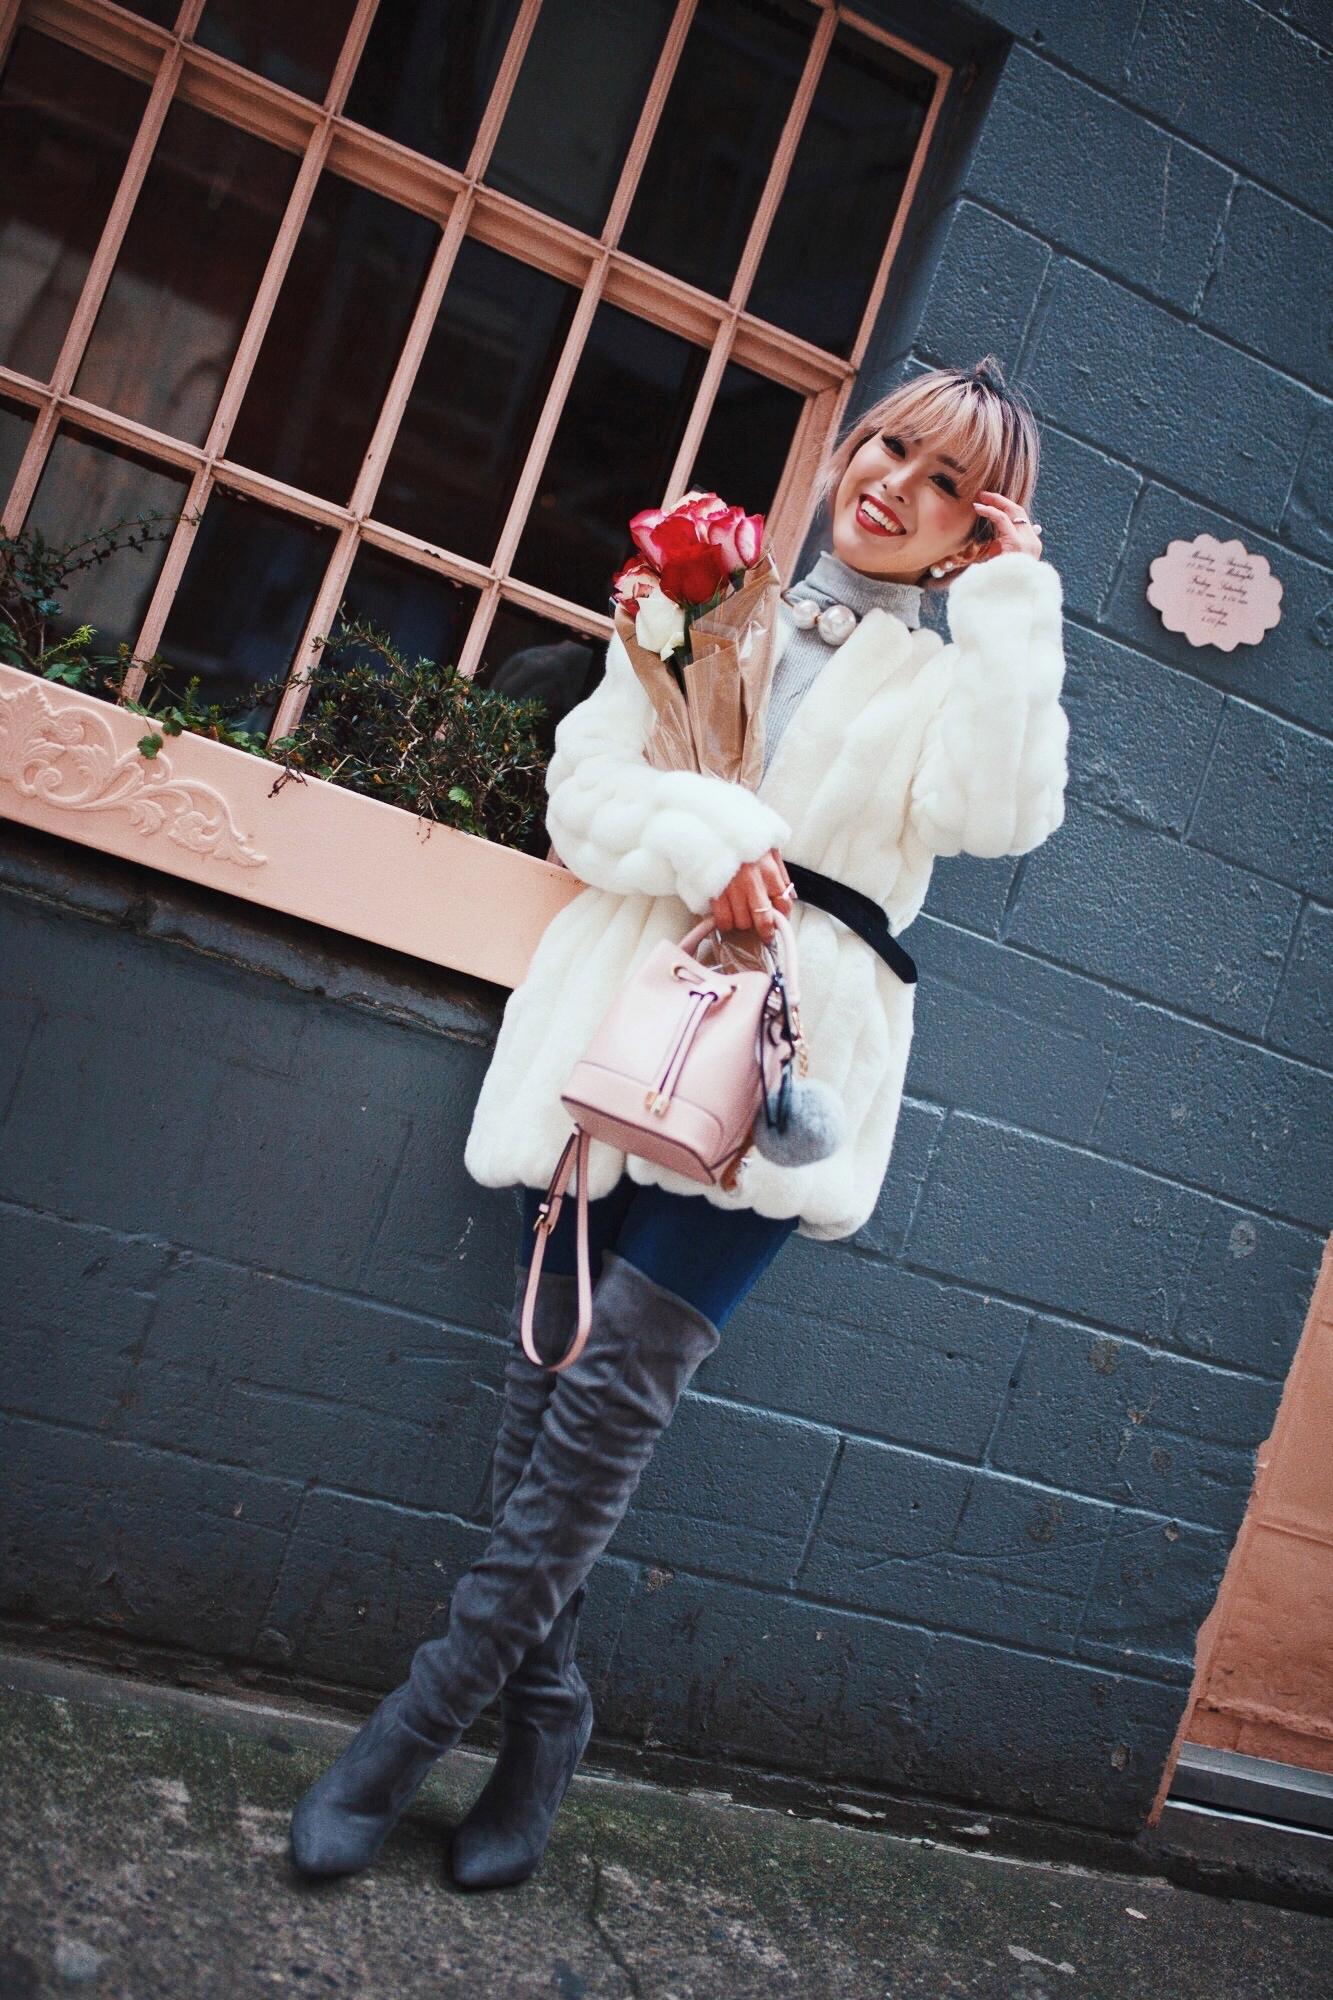 H&M Gray Turtleneck Sweater-ASOS high waisted skinny jean-EGO Grey Over the Knee Boots-While Faux Fur Coat-Forever 21 Pearl Belt & Pink Mini Basket Bag-Chanel Ribbon Hair-Valentine's Day-Rose bouquet-Pink Hair-Japanese-Seattle Style Fashion Blogger-AikA's Love Closet 12